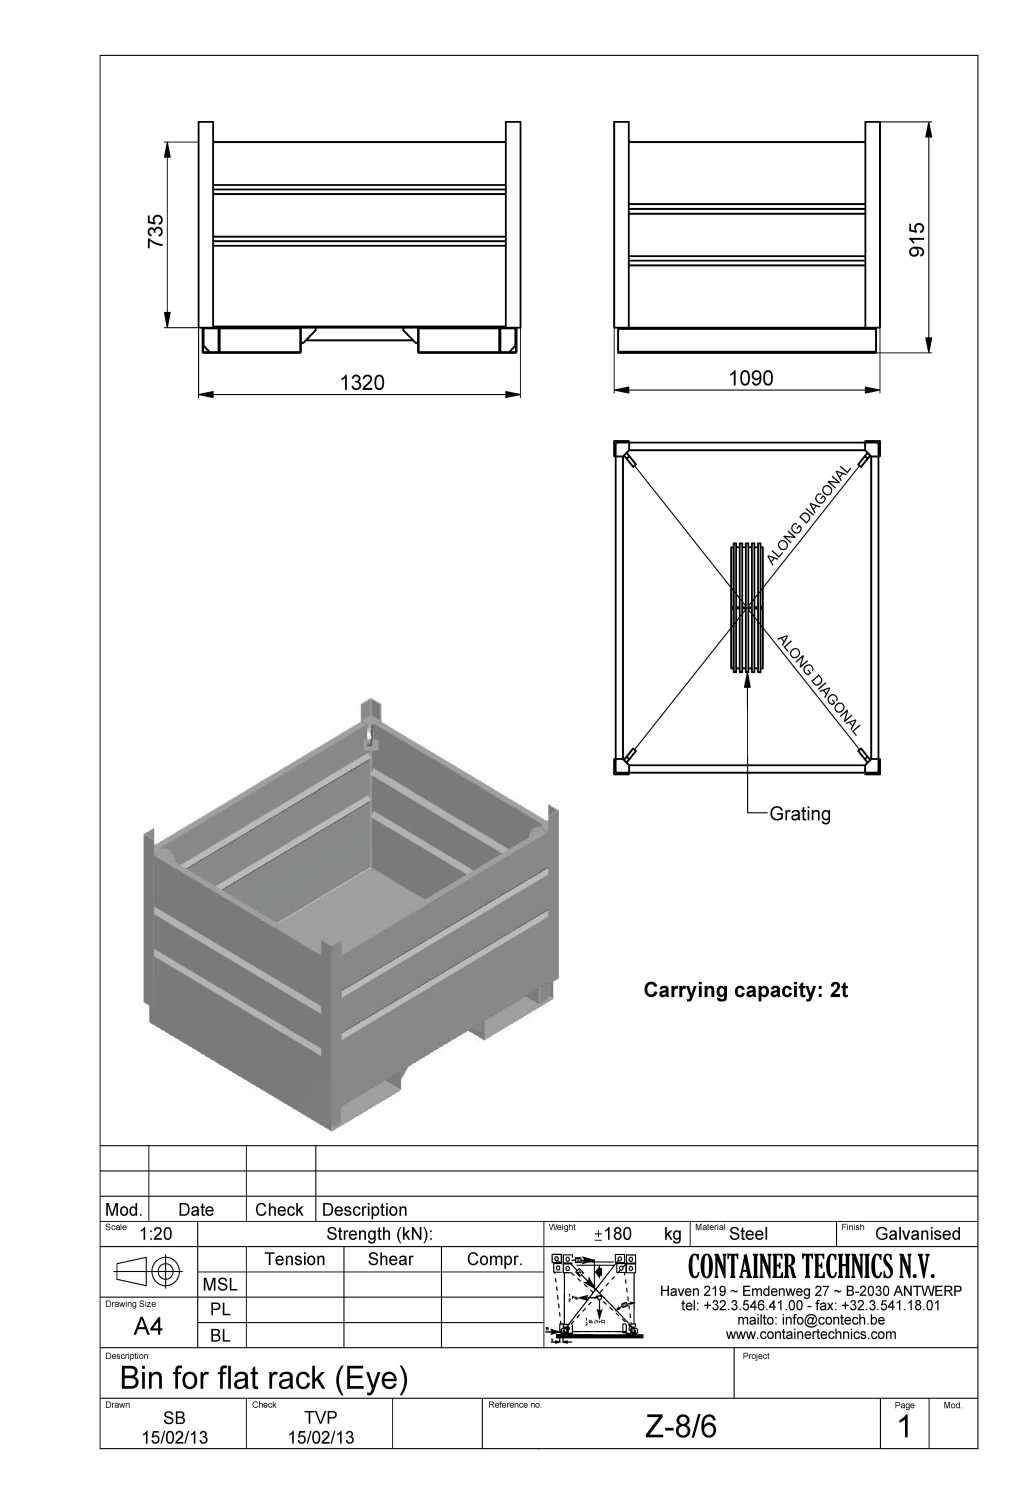 Z-8/6 bin for flat rack